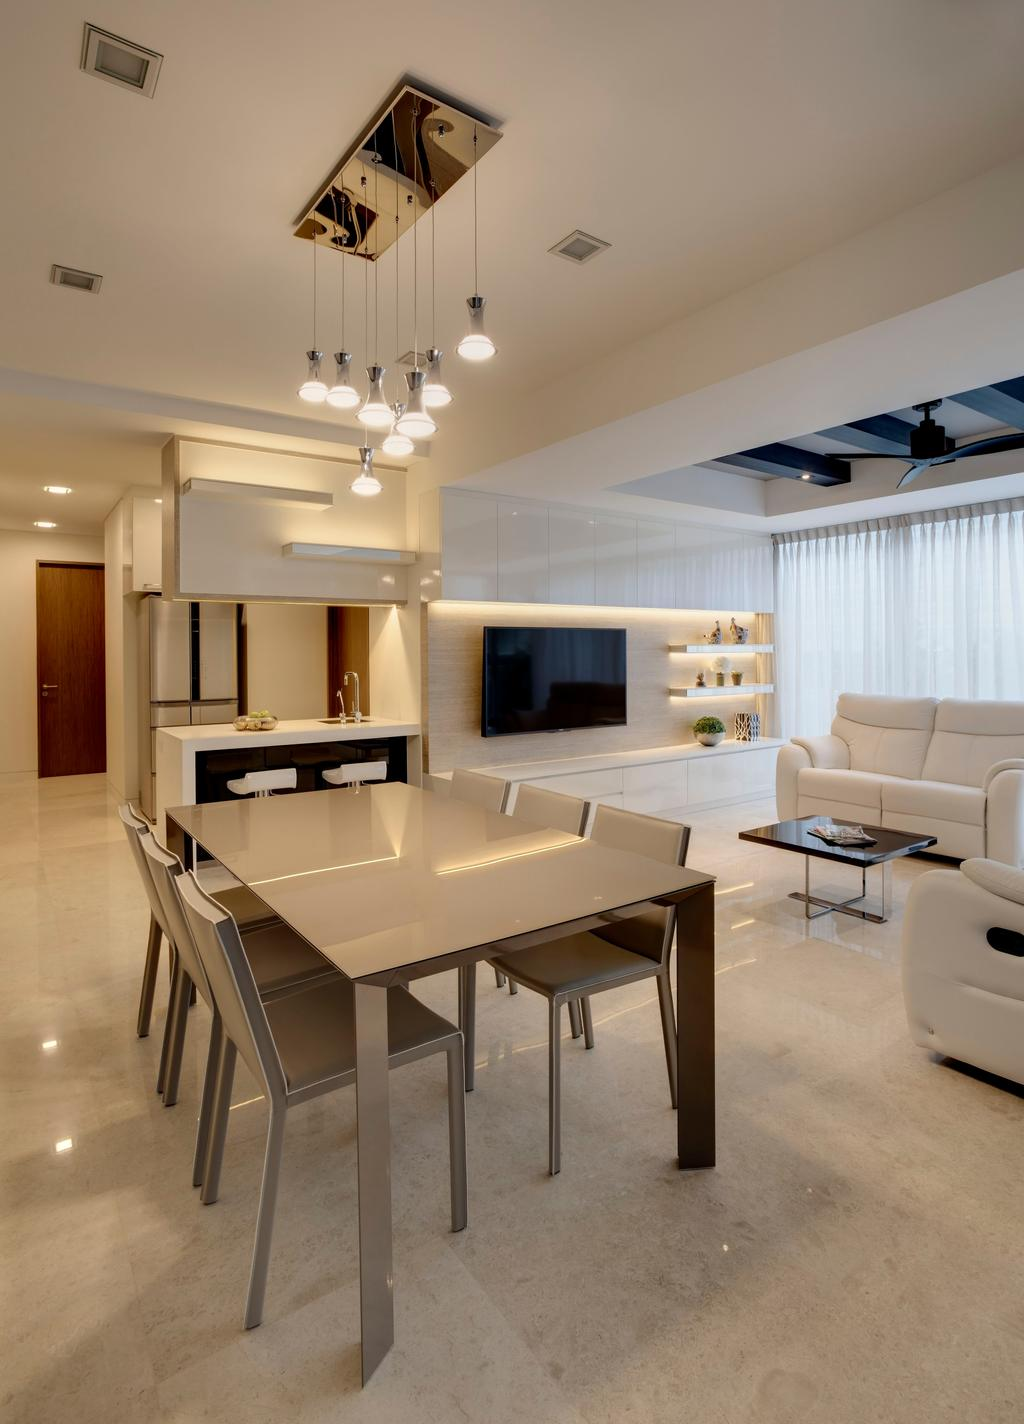 Contemporary, Condo, Dining Room, St. Patrick's Residences, Interior Designer, The Orange Cube, Dining Table, Dining Chairs, Clean, White, Tiles, Sofa, Coffee Table, Tv, Tv Console, Shleves, Cove Lights, Cabinets, Bar Top, Bar Stools, Warm, Chair, Furniture, Table, Indoors, Interior Design, Room